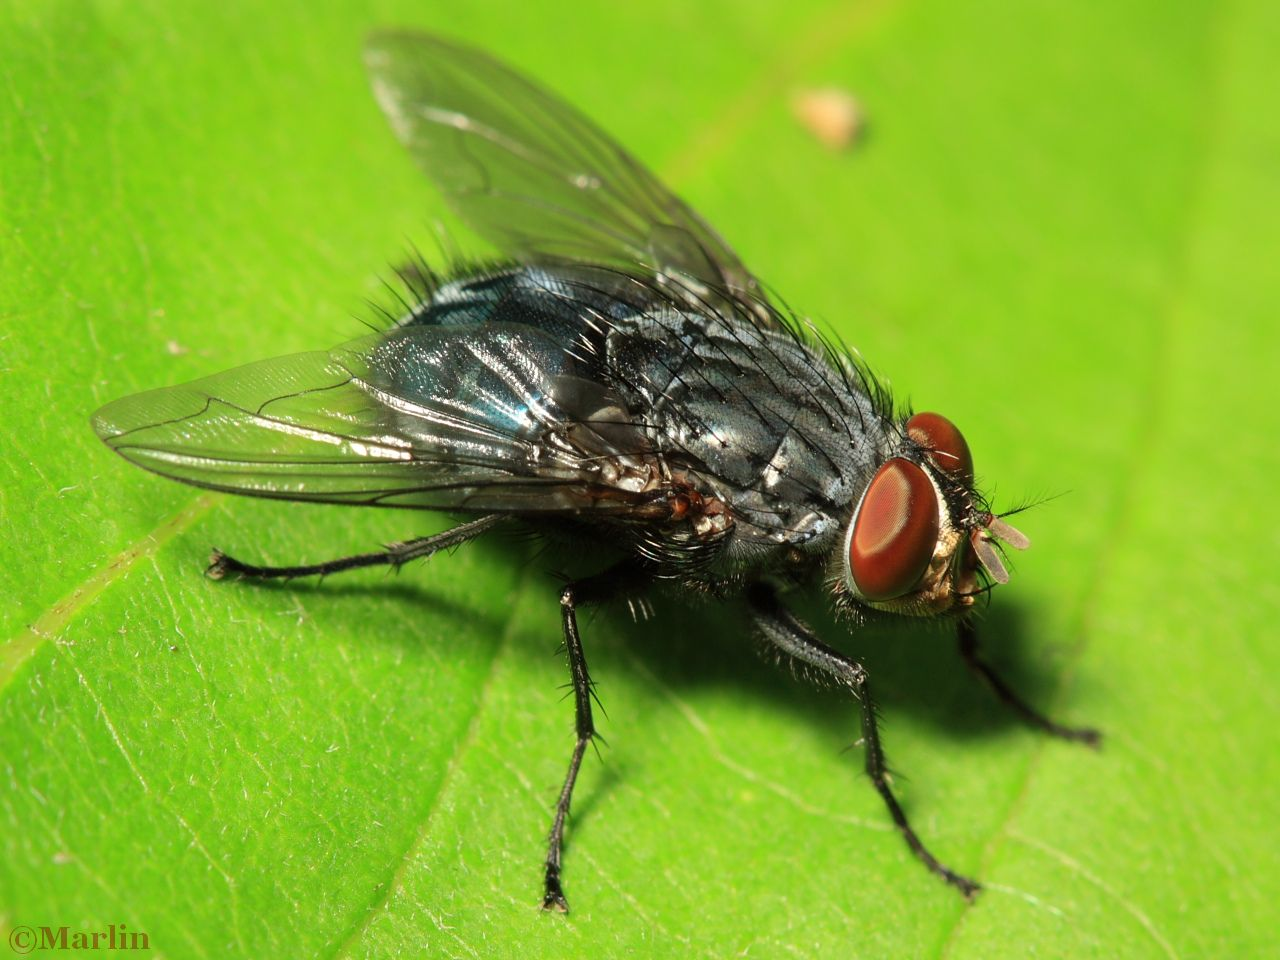 Blue Blow Fly, Calliphora vicina